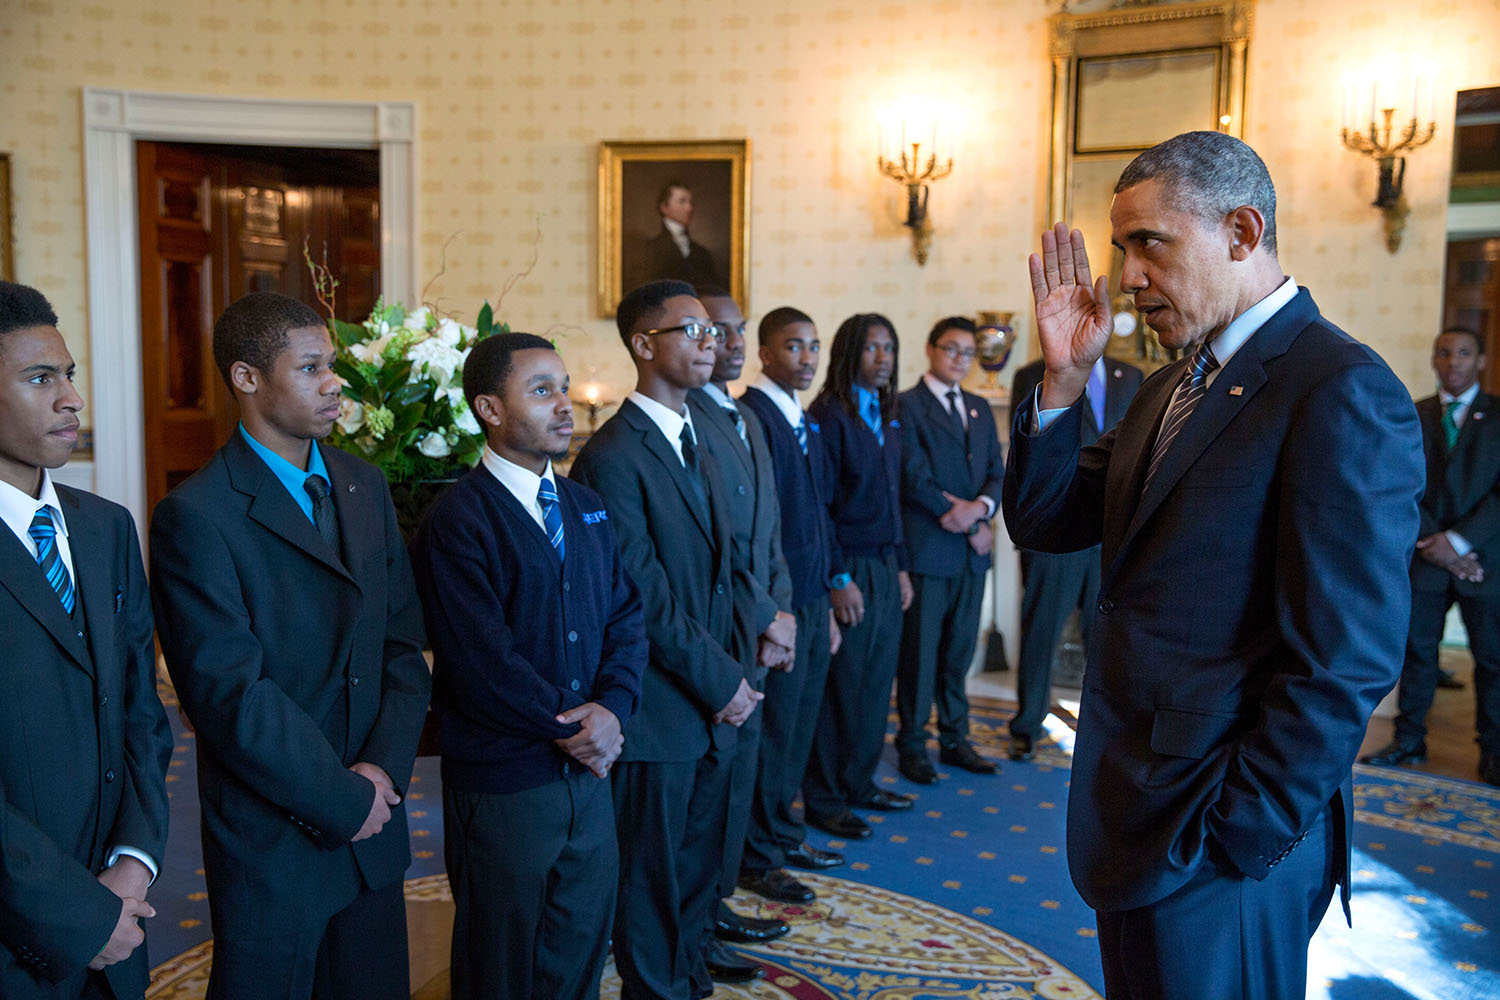 President Obama addresses young high school students.